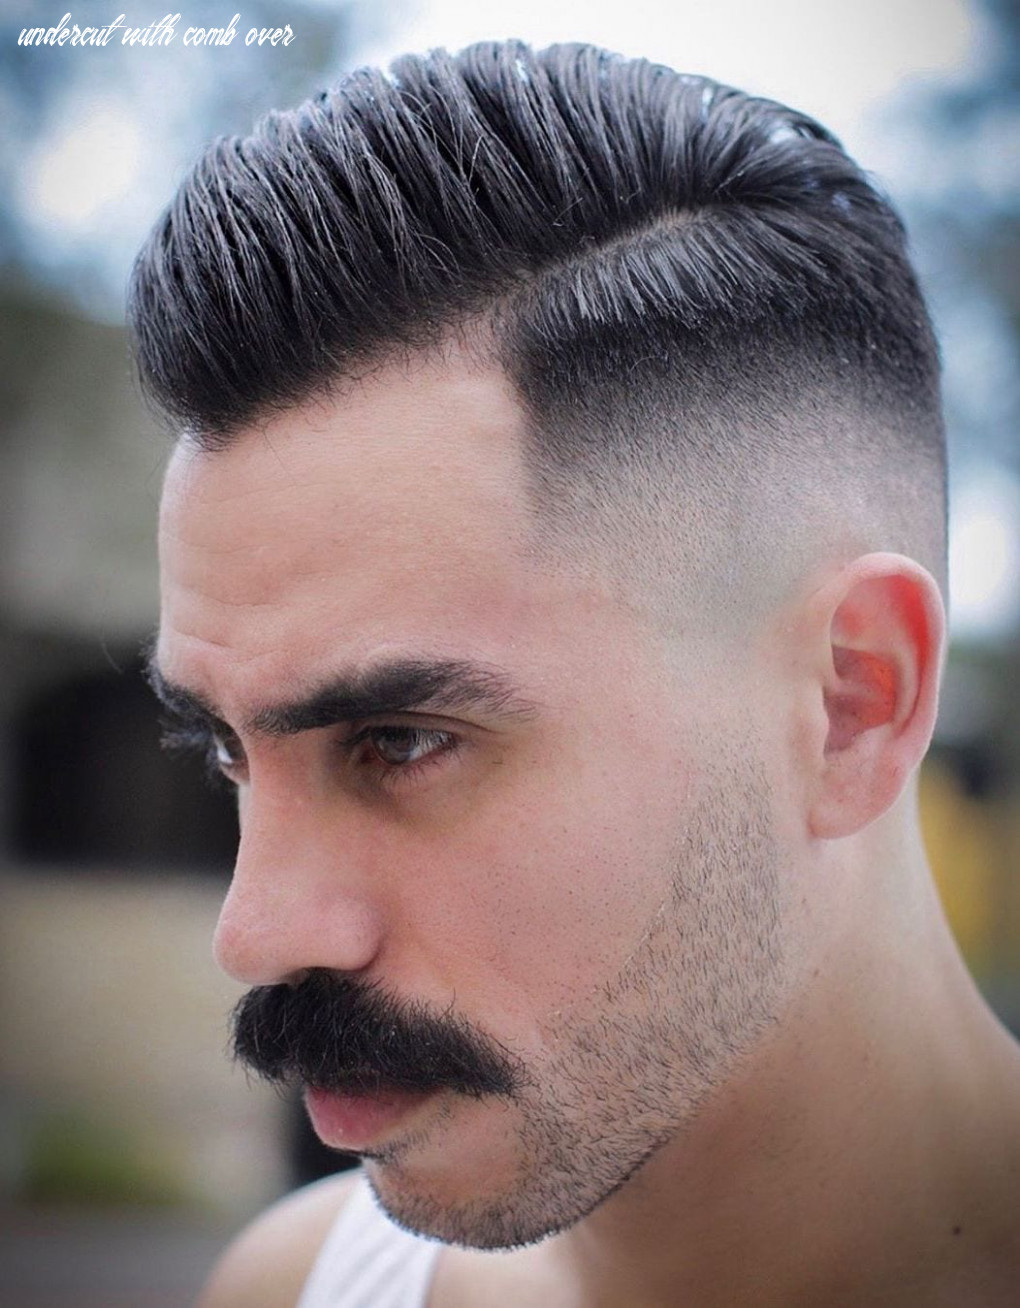 9 Comb Over Haircuts: (Not What You Think!)